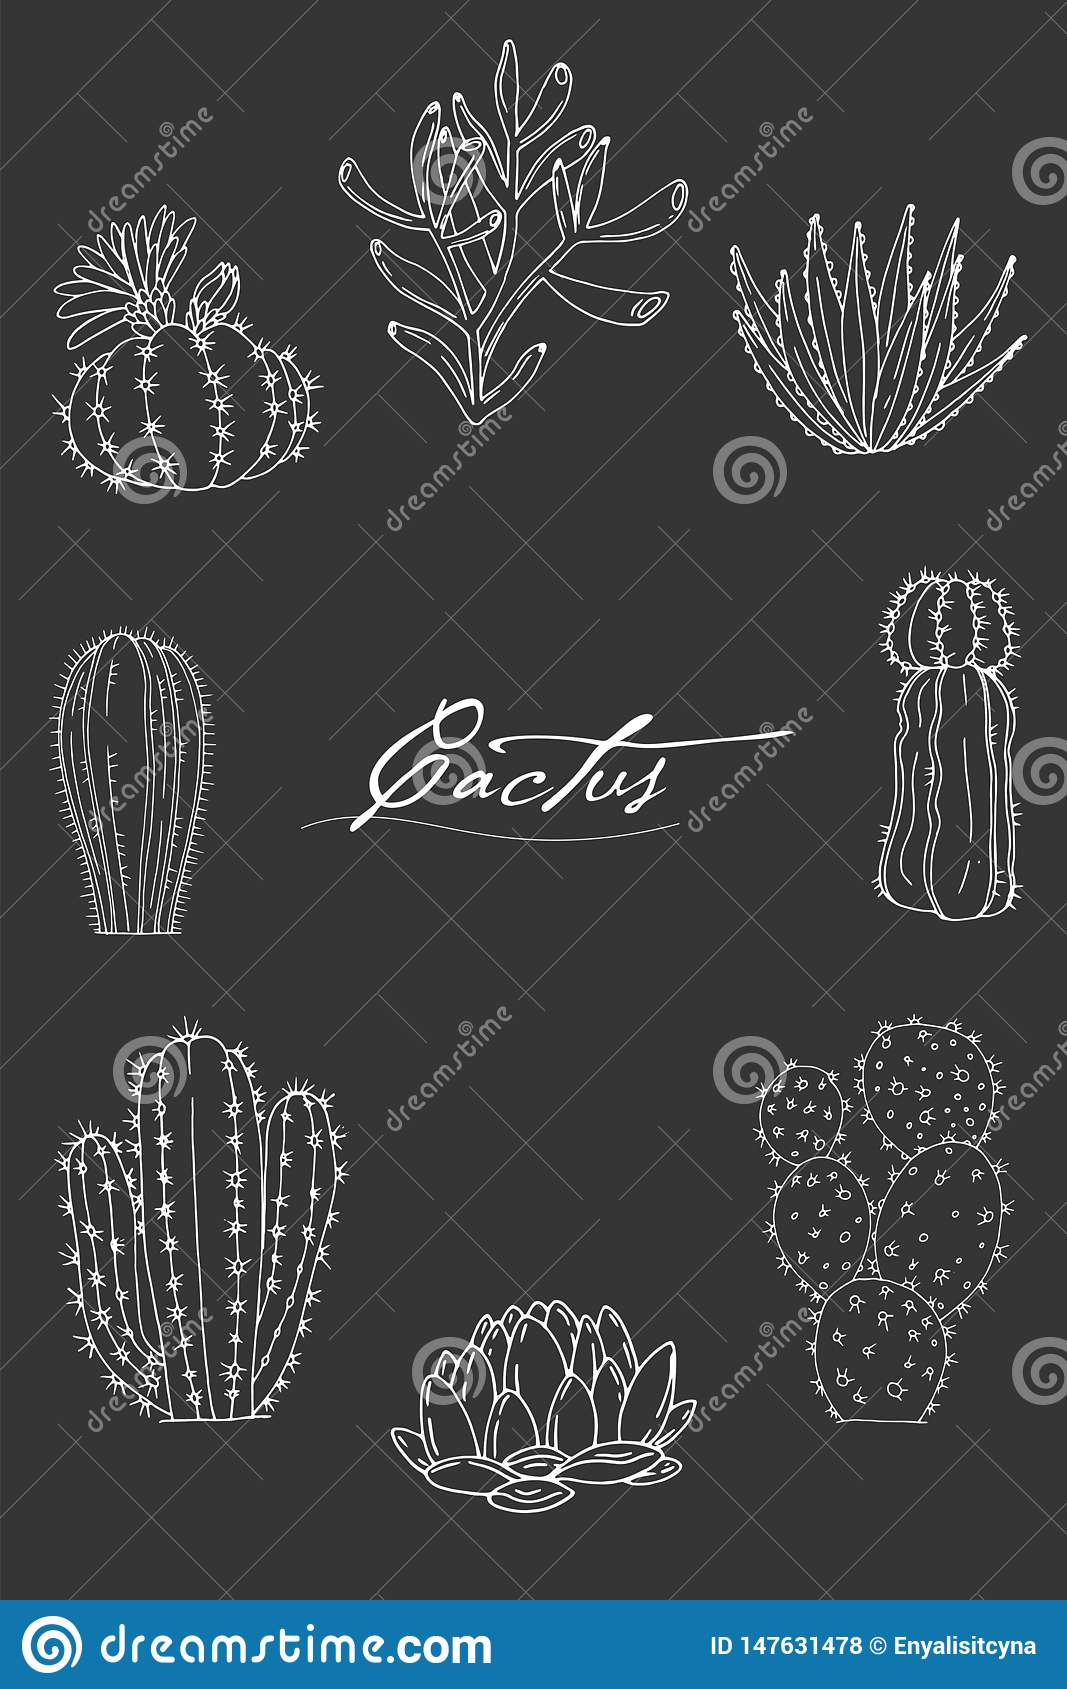 Poster With Ornament Hand Drawn Lettering Cacti And Succulents On A Chalkboard Background Stock Vector Illustration Of Cactus Miscellaneous 147631478